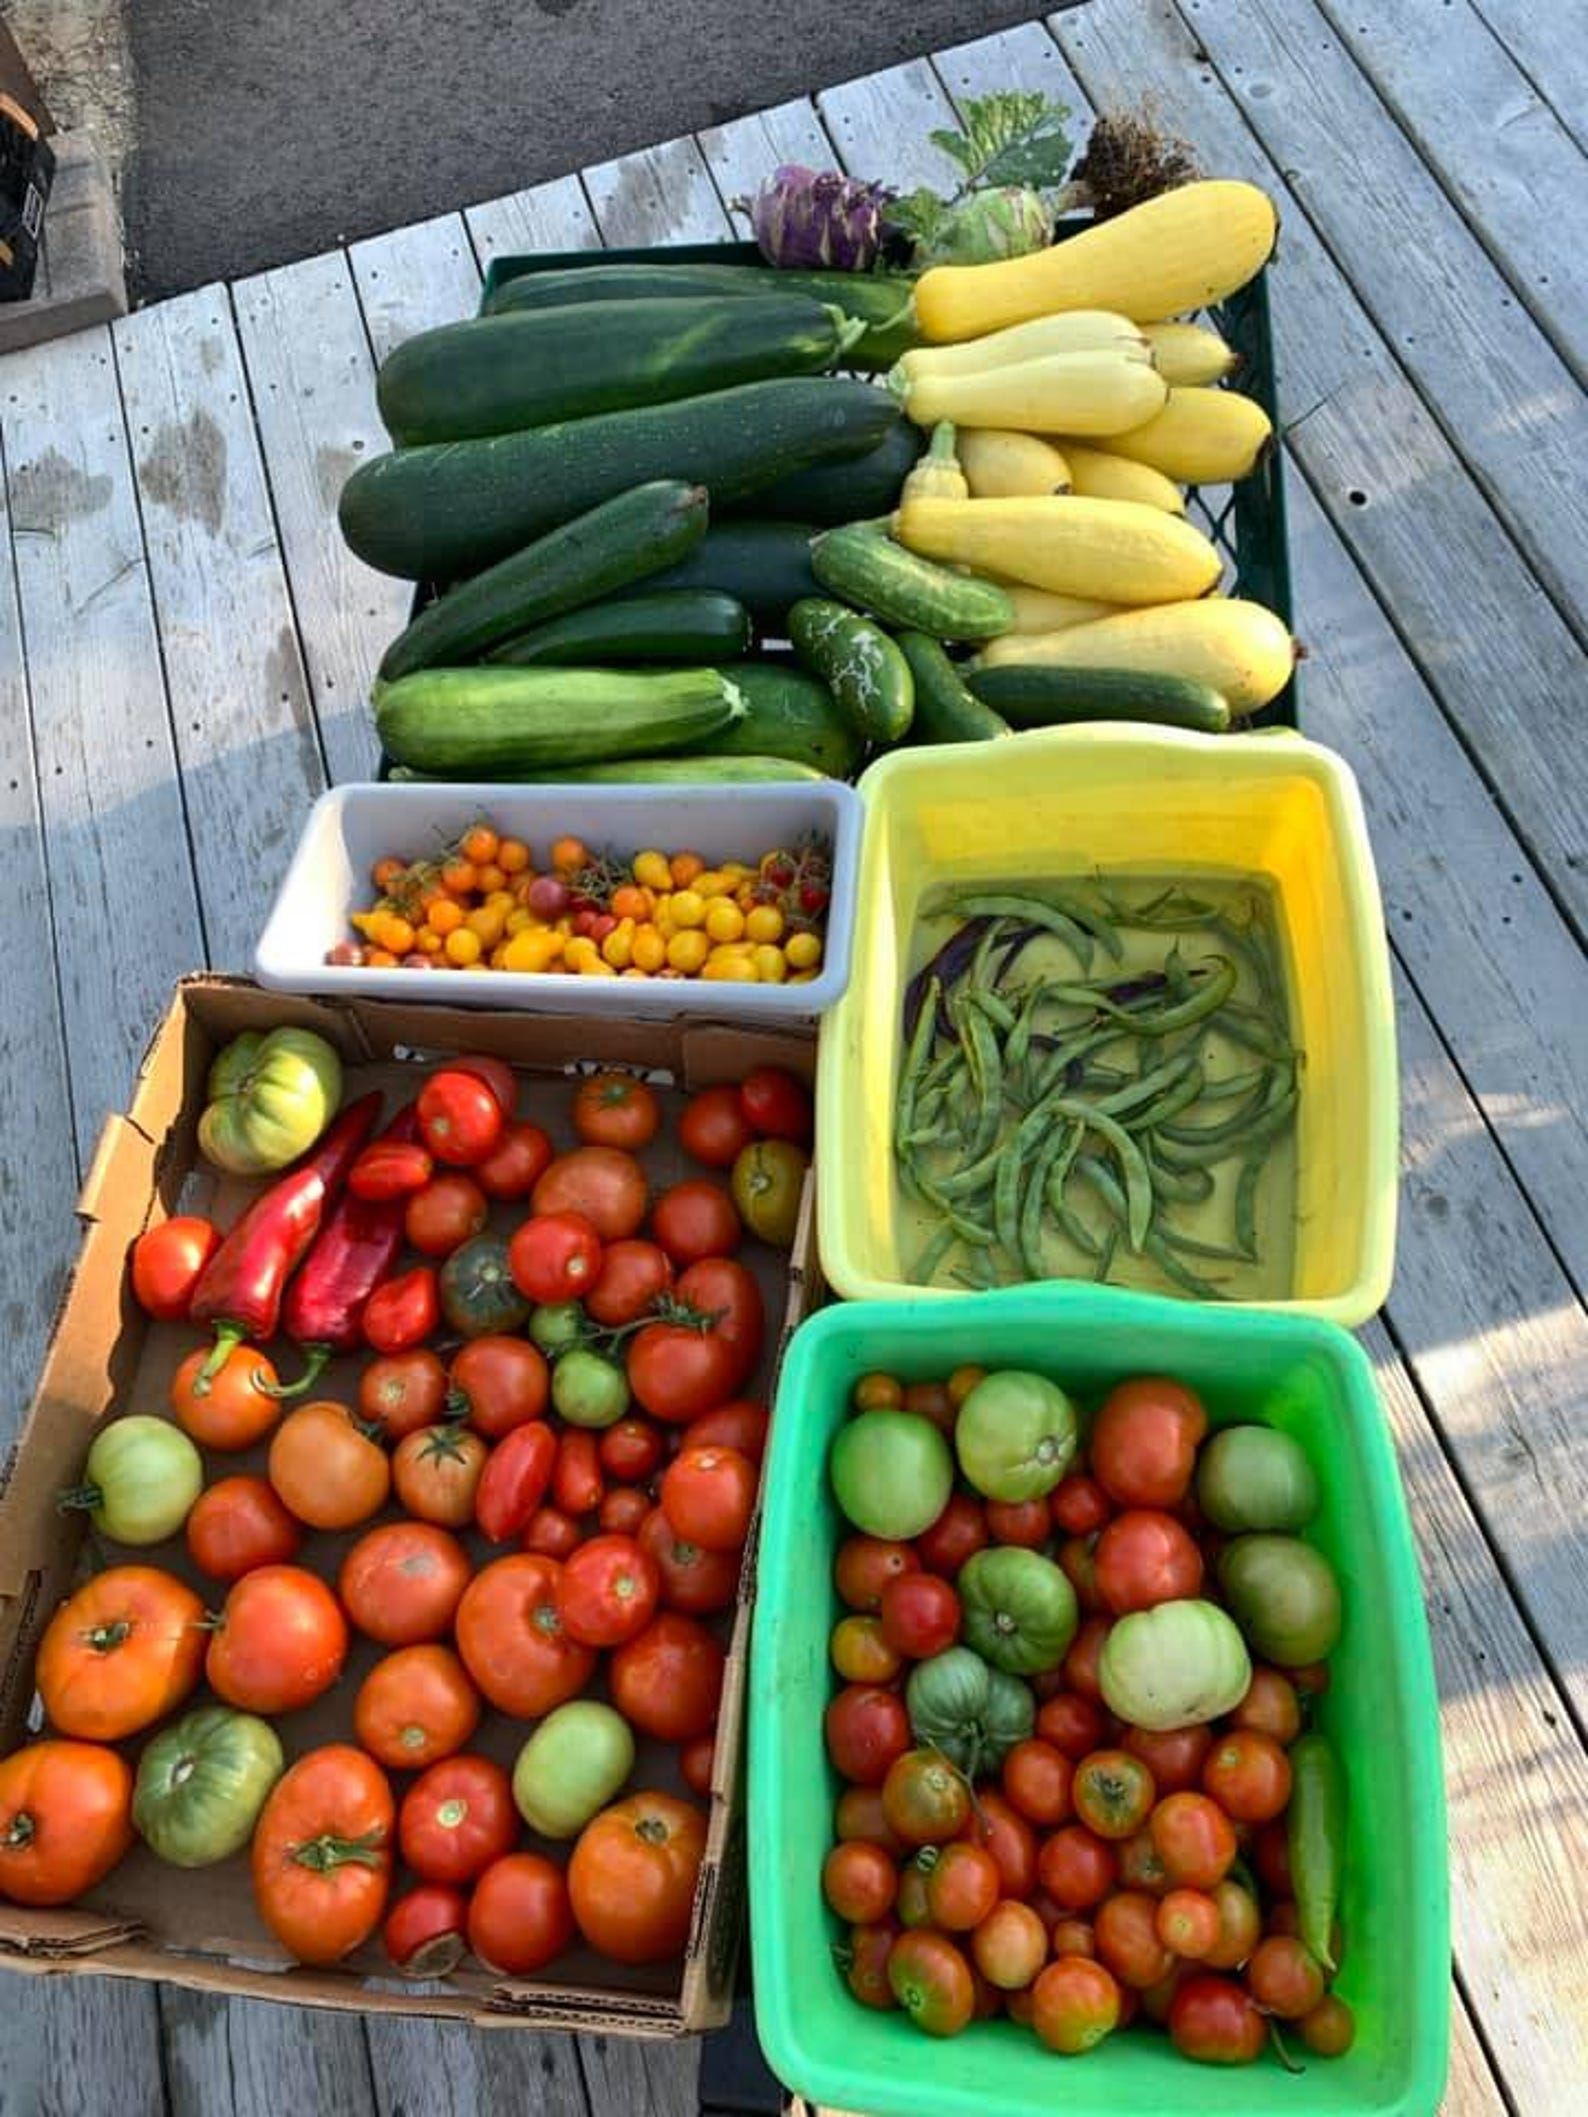 Tomatoes, peppers and zucchini are considered great starter crops for first-time gardeners because they're fairly easy to grow.